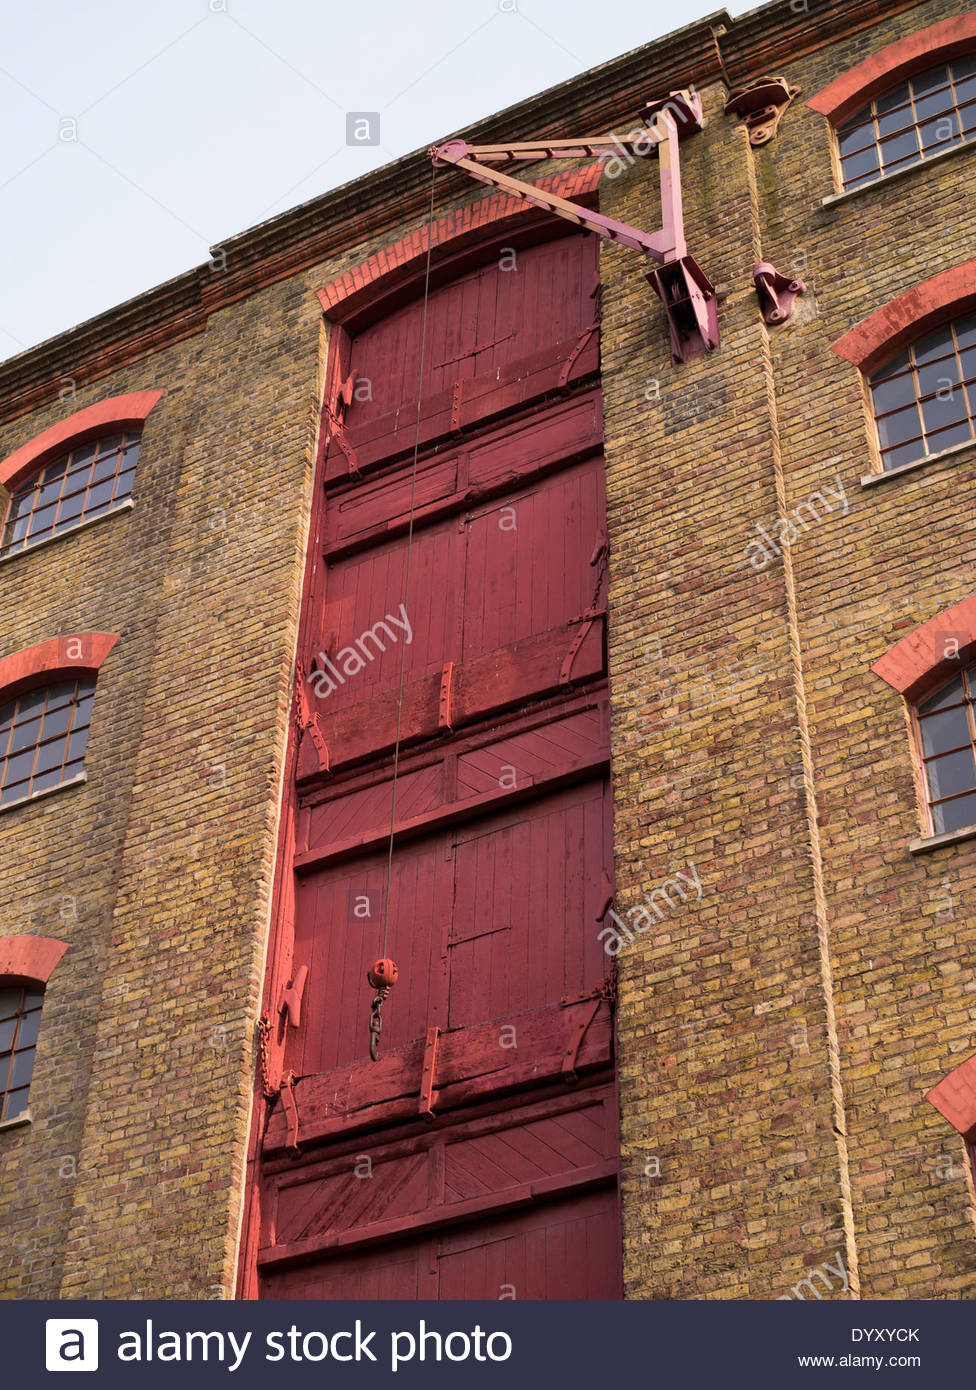 king-henrys-wharves-within-the-wapping-w